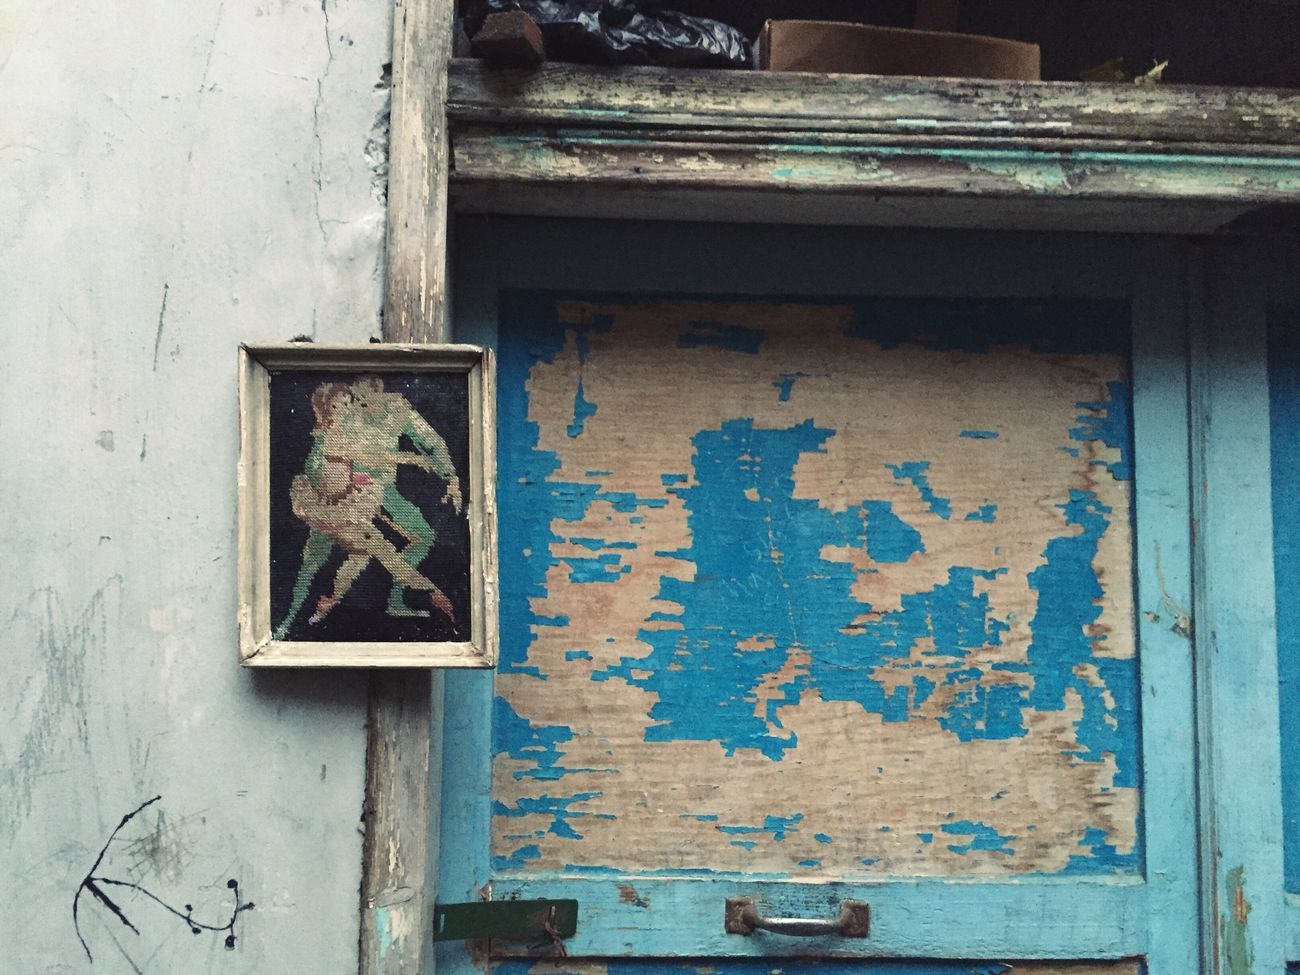 Tourism in Tyr Lebanon Frame Art ArtWork Street Art Art And Craft Streetphotography Streetphoto_color Door Dance Dancing Dancers Lebanon Sidon Blue Wood Old Town